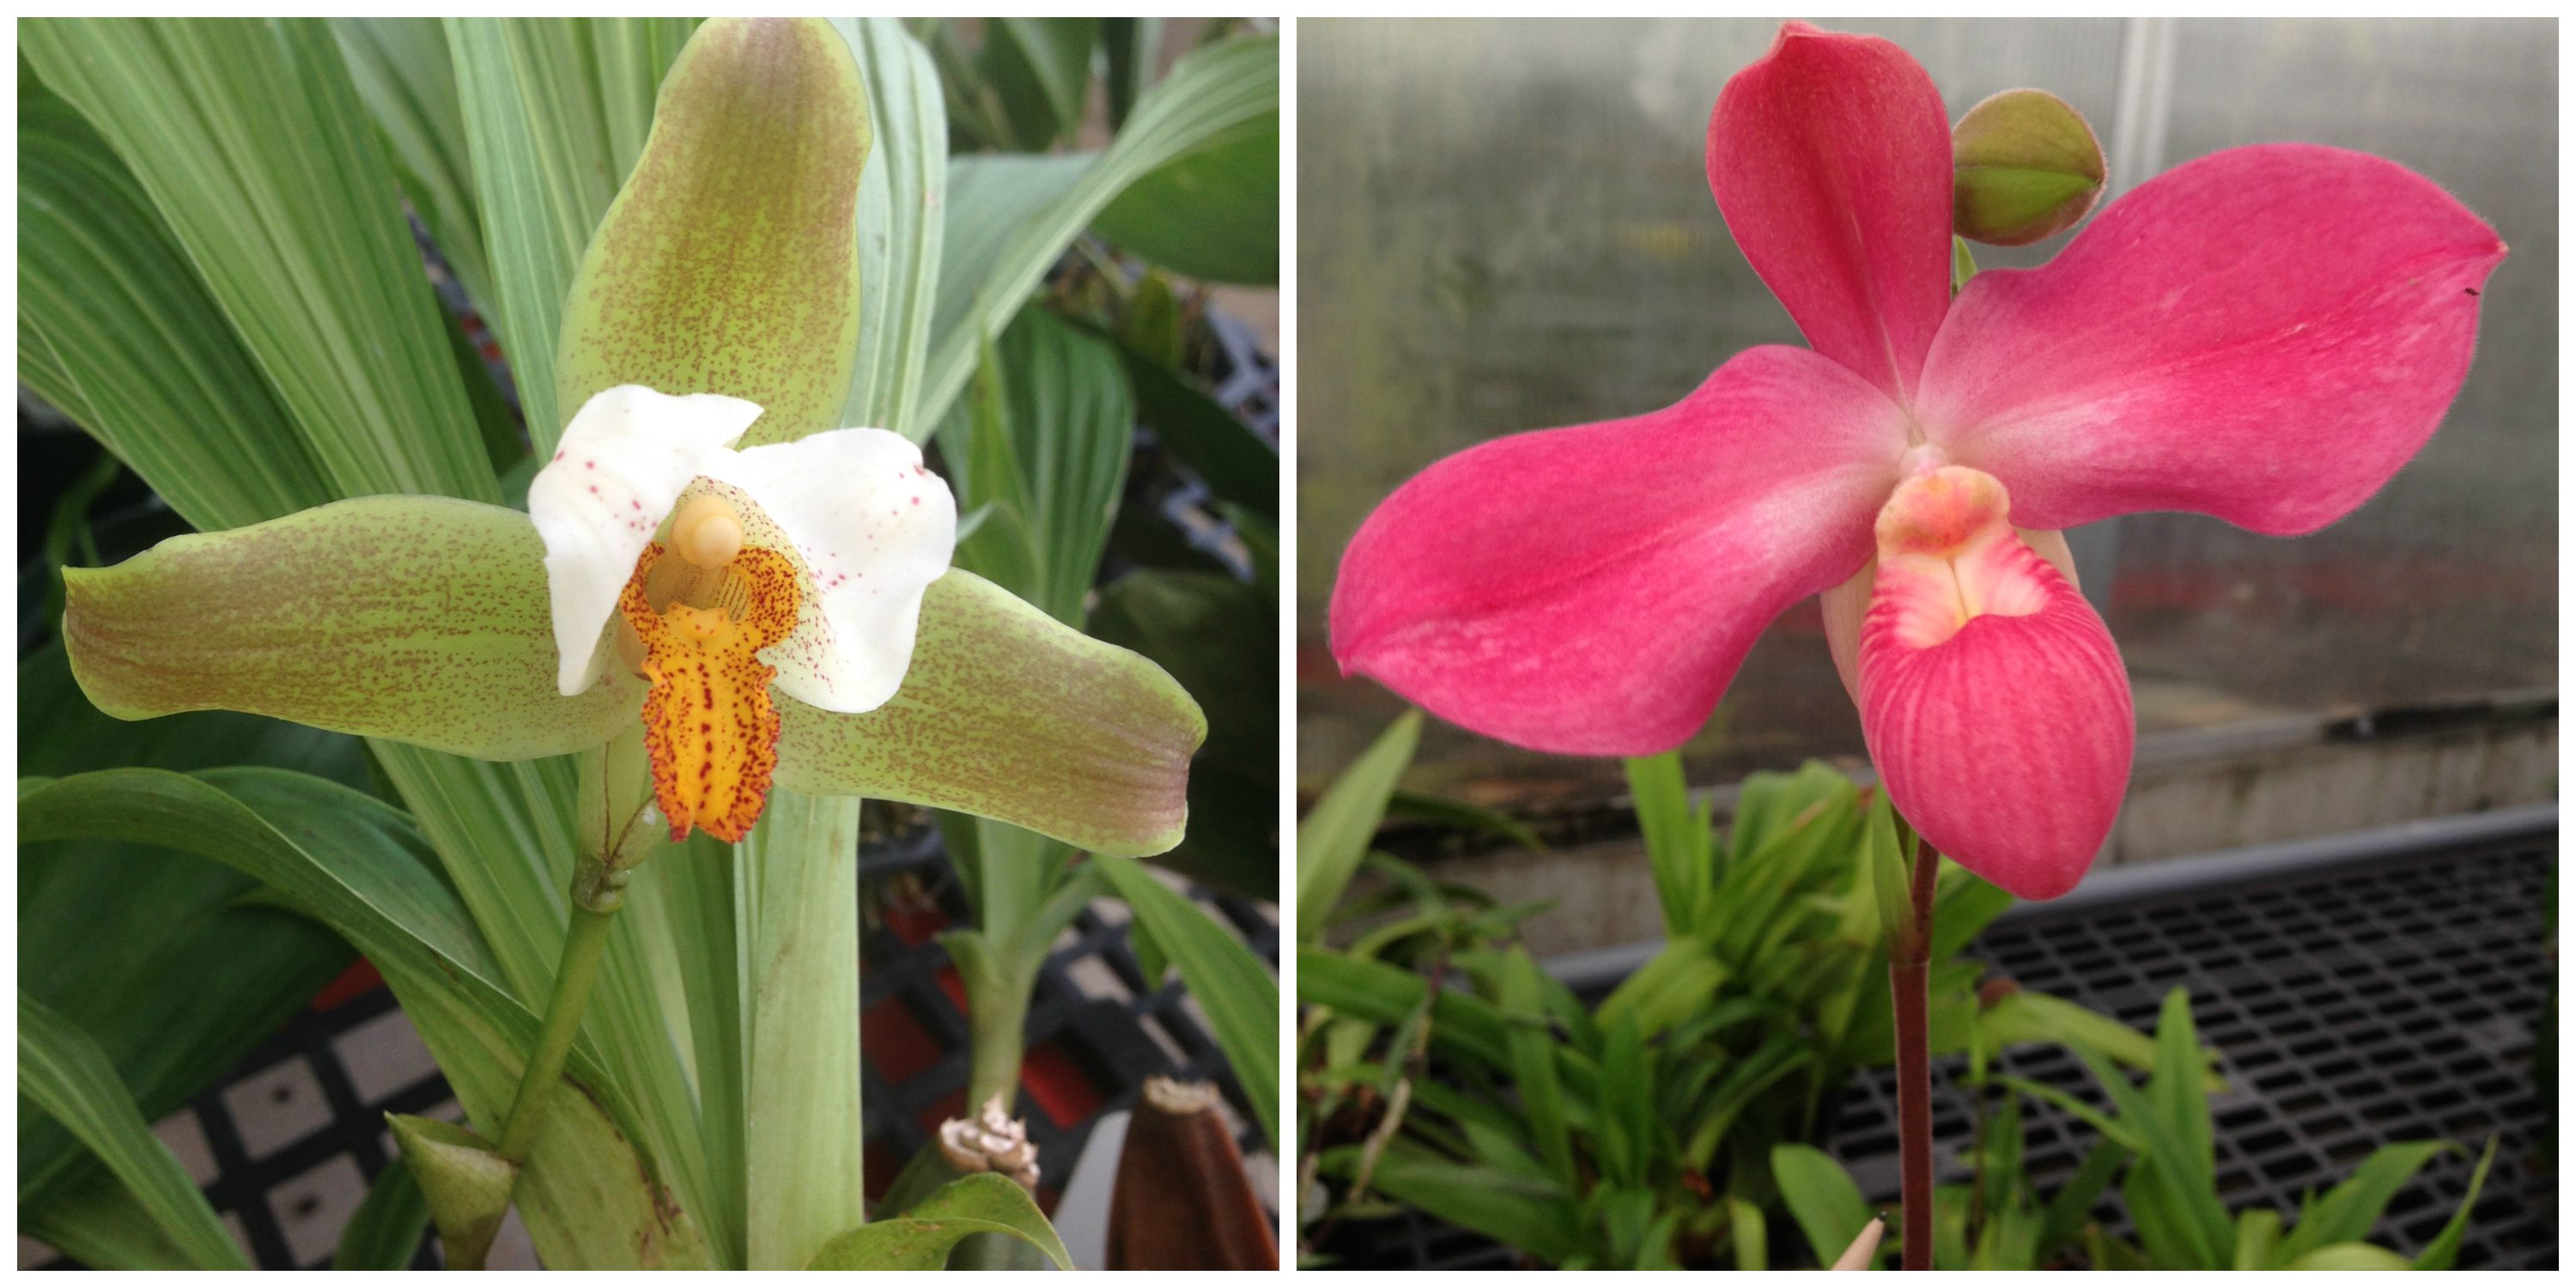 Rare and Beautiful Orchids (and a Horticulturist) Find Home at Smithsonian Gardens